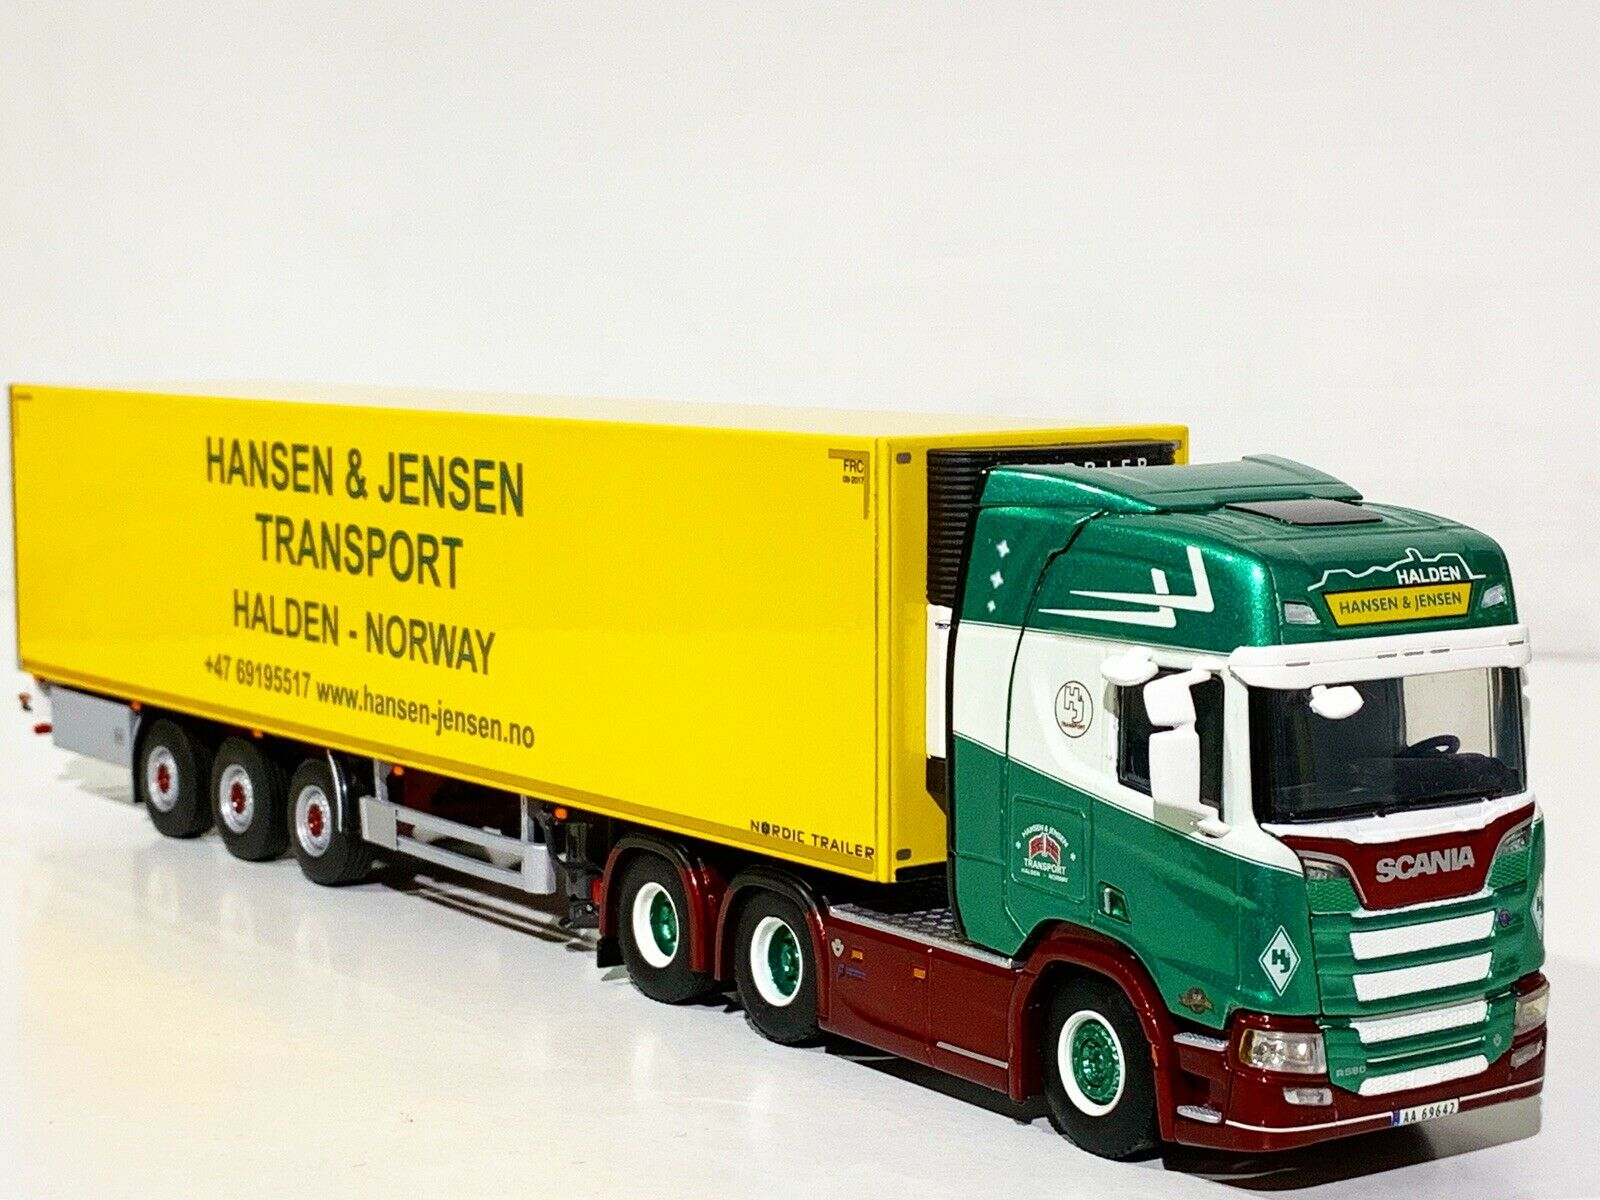 WSI TRUCK MODELS,SCANIA R HIGHLINE CR20H 6x2 REEFER TRAILER  HANSEN&JENSEN